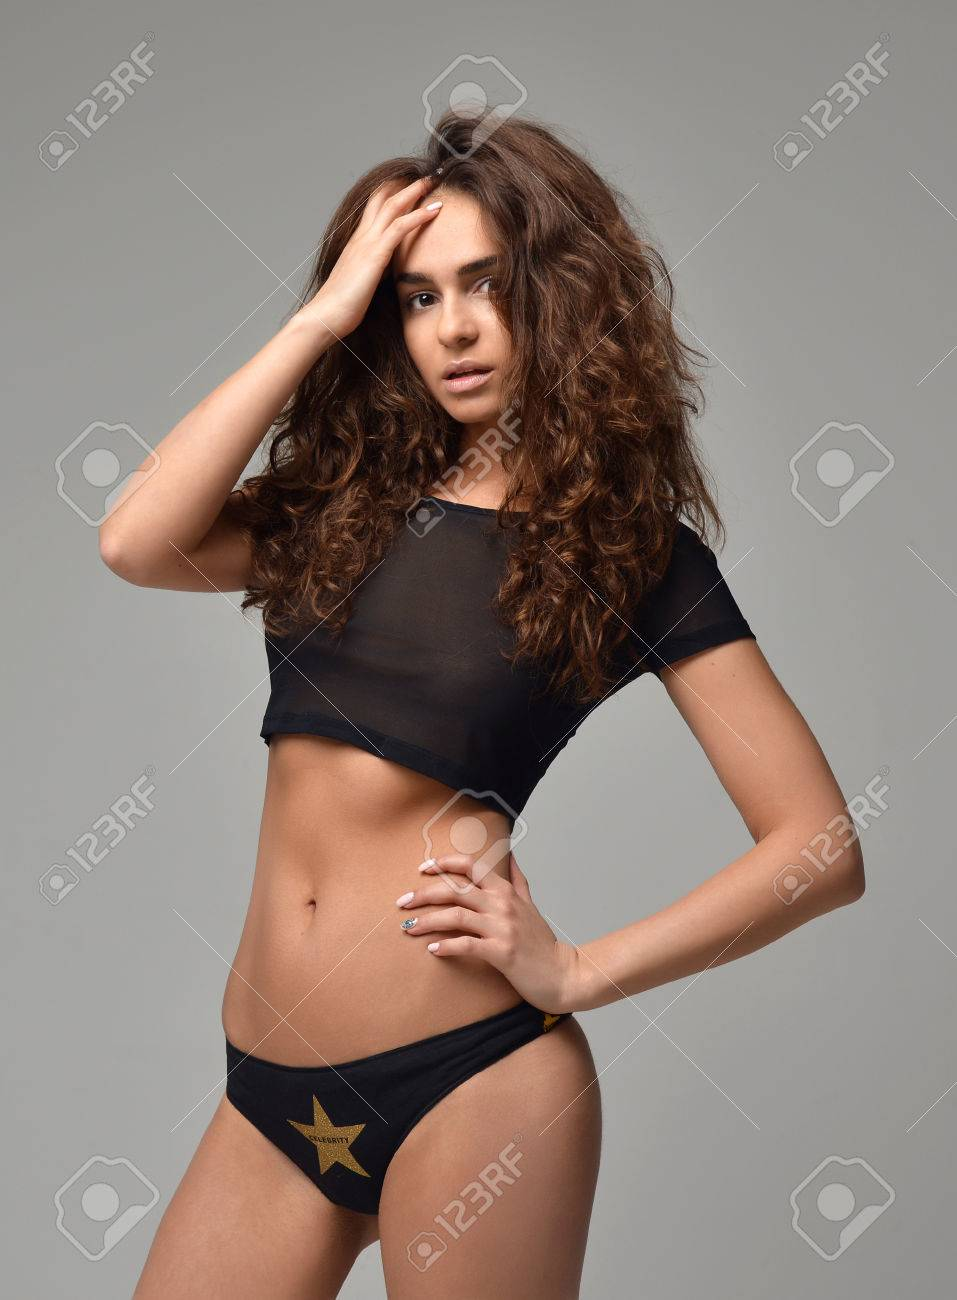 Sexy young beautiful woman posing in black modern bikini underwear vest on  a warm grey background eea8f5fbd